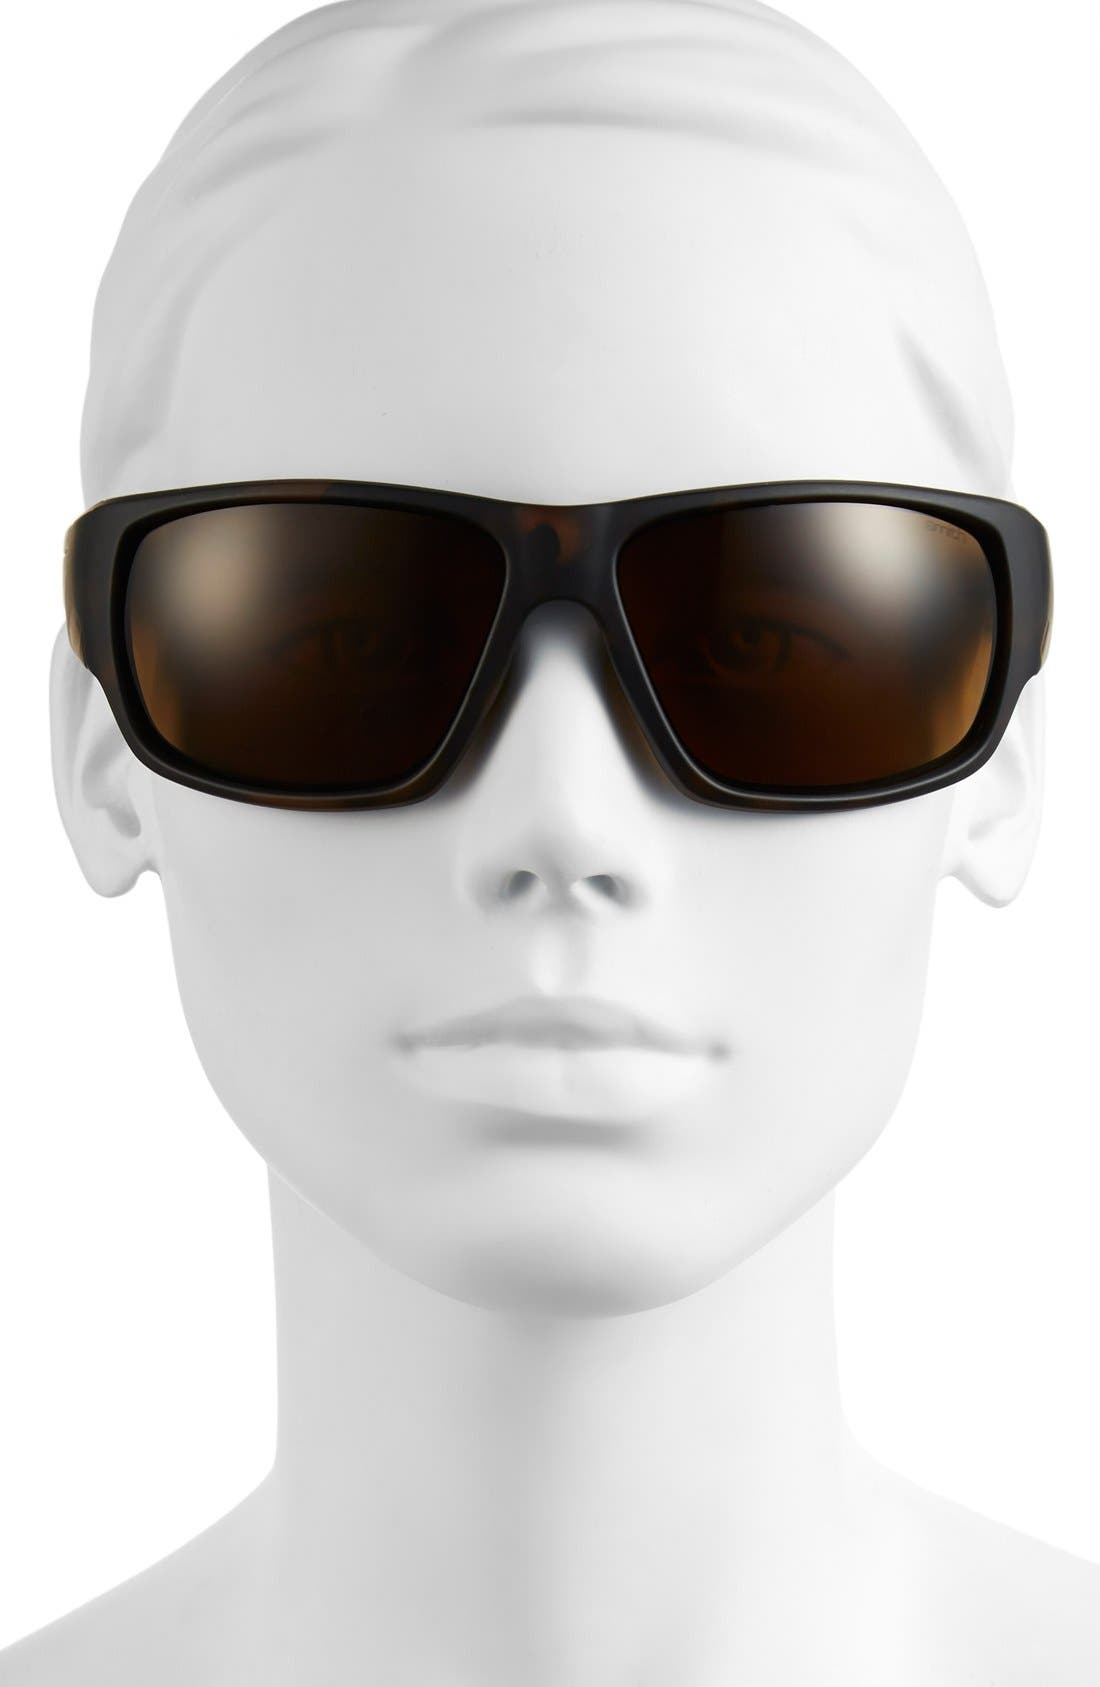 'Dragstrip' 64mm Polarized Sunglasses,                             Alternate thumbnail 2, color,                             MATTE TORTOISE/ POLAR BROWN